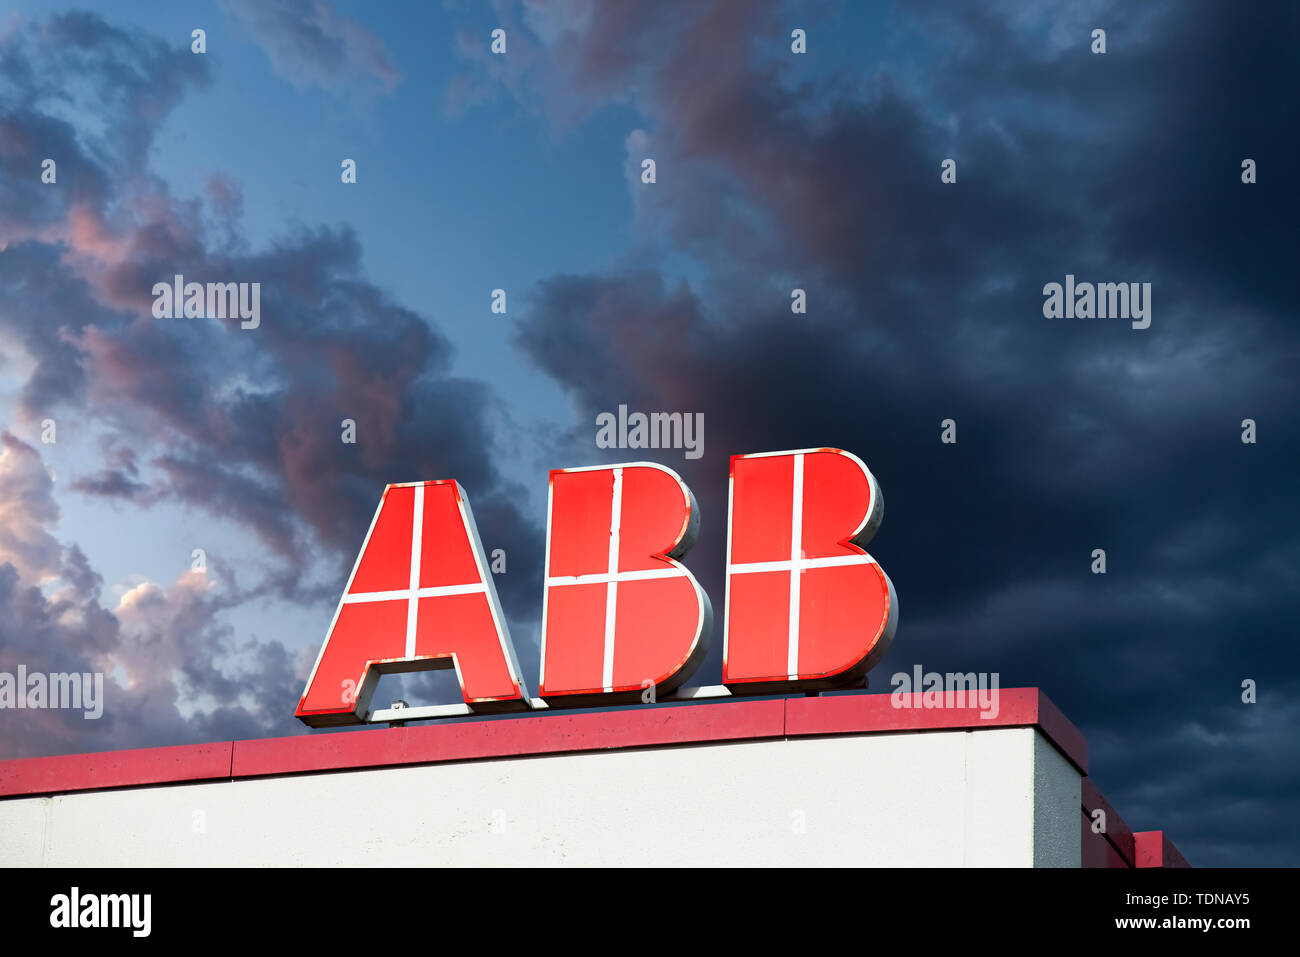 The ABB logo on the roof of a building [M] - Stock Image